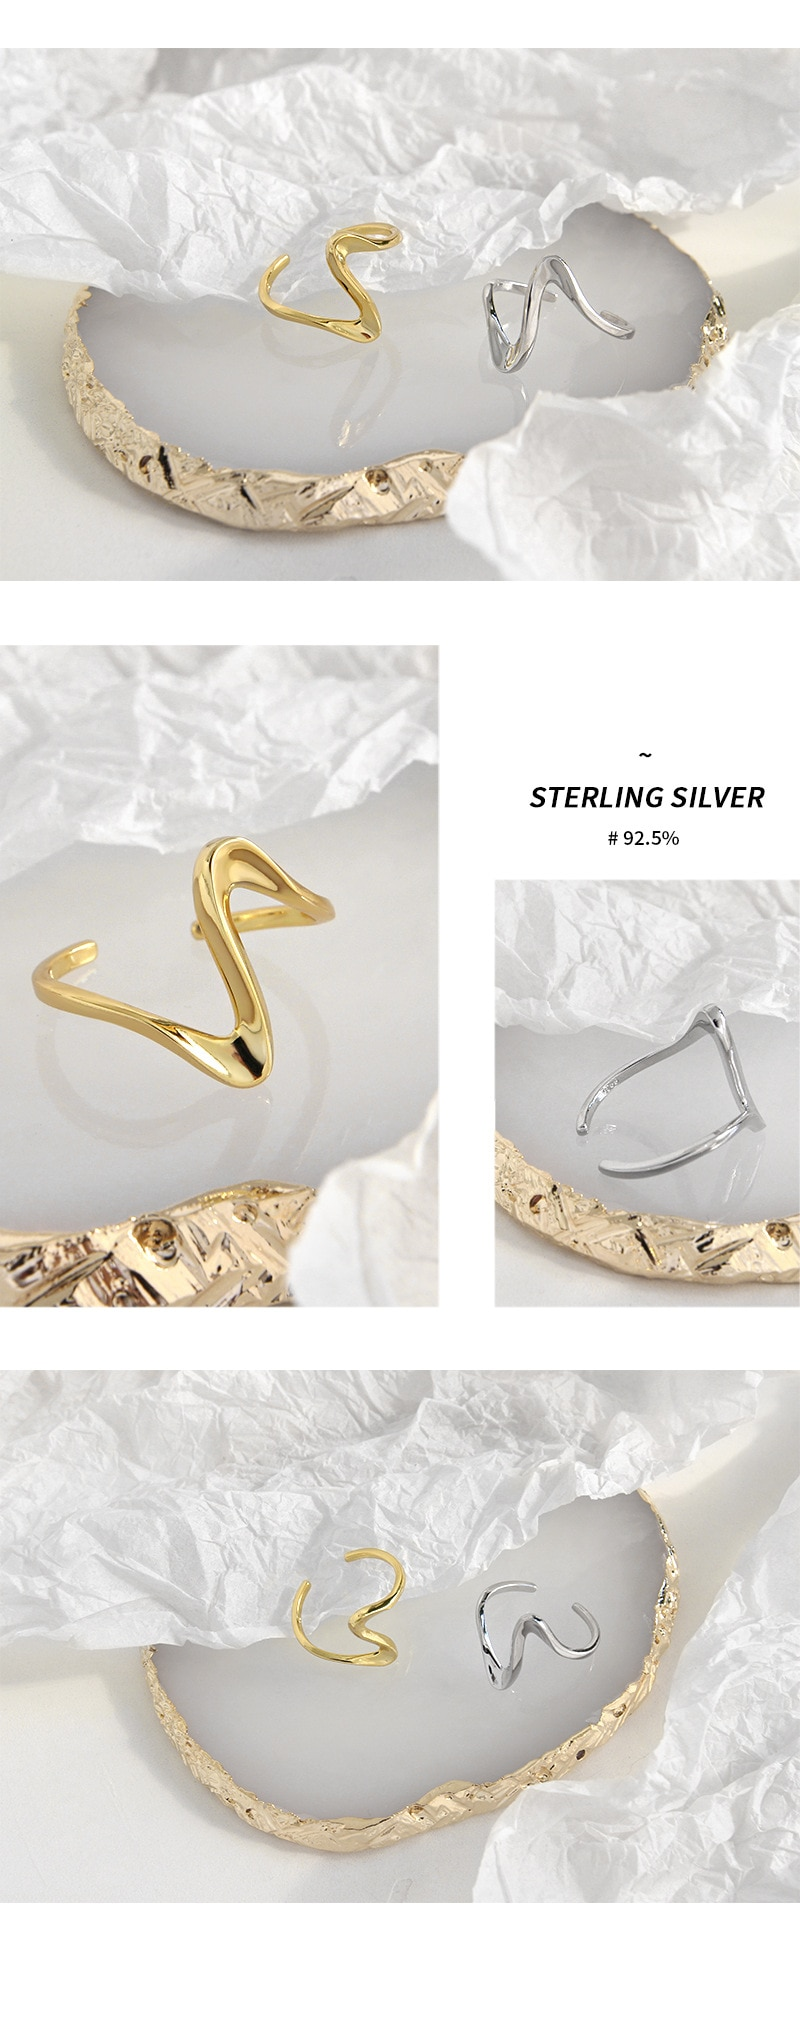 Kinel 925 Sterling Silver Open Rings Korean Twisted Wave Silver Gold Color Anel Finger Ring For Women Statement Adjustable